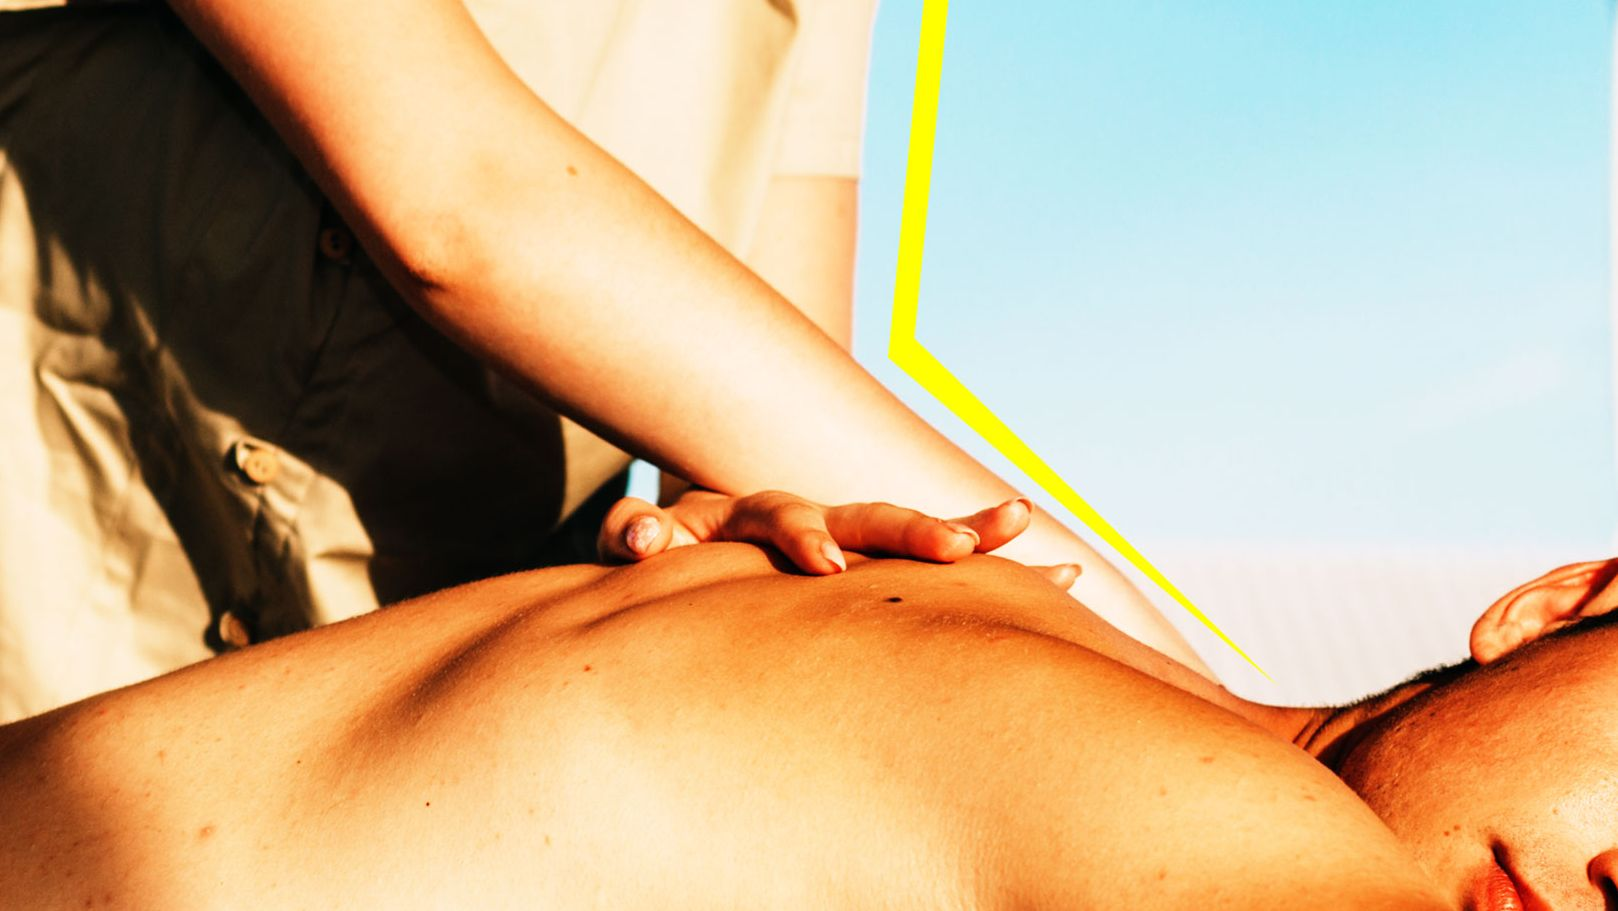 12 Massage Therapists Open Up About Sexual Harassment They've Experienced at Work